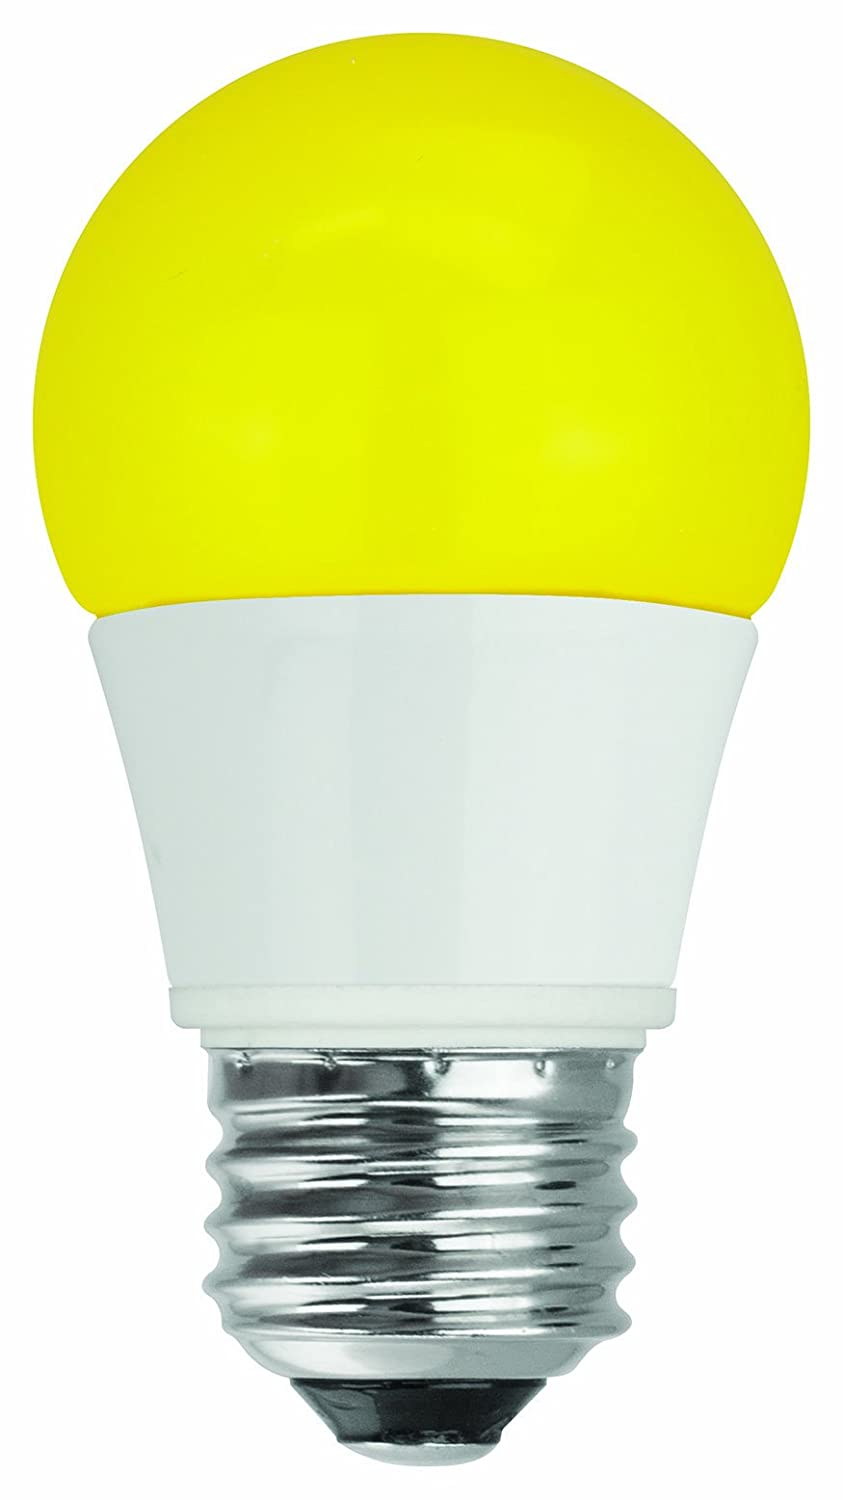 tcp rla155y led a15 40 watt equivalent 5w yellow colored light bulb bug lig ebay. Black Bedroom Furniture Sets. Home Design Ideas